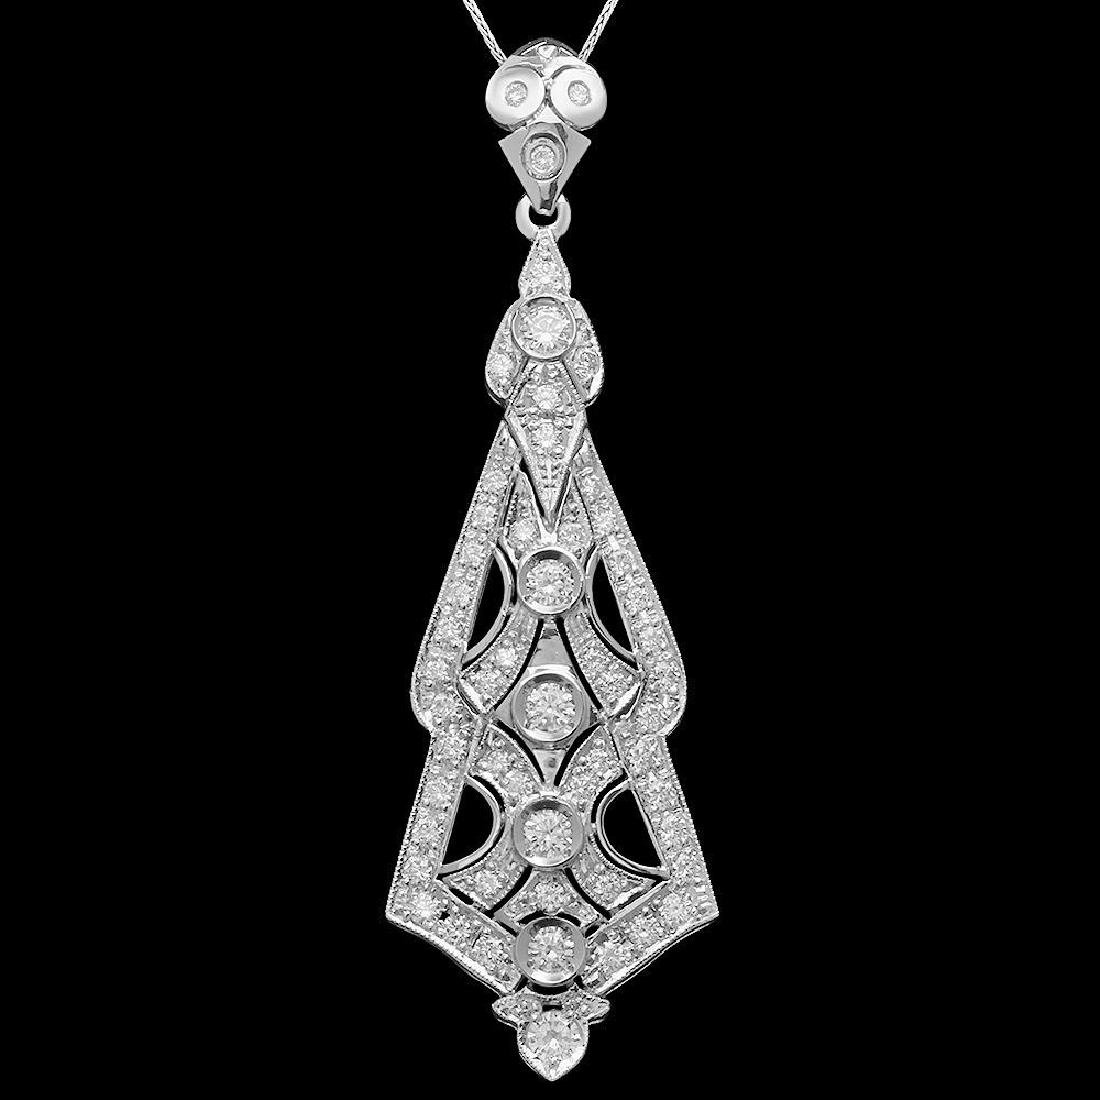 14K Gold 2.65ct Diamond Pendant